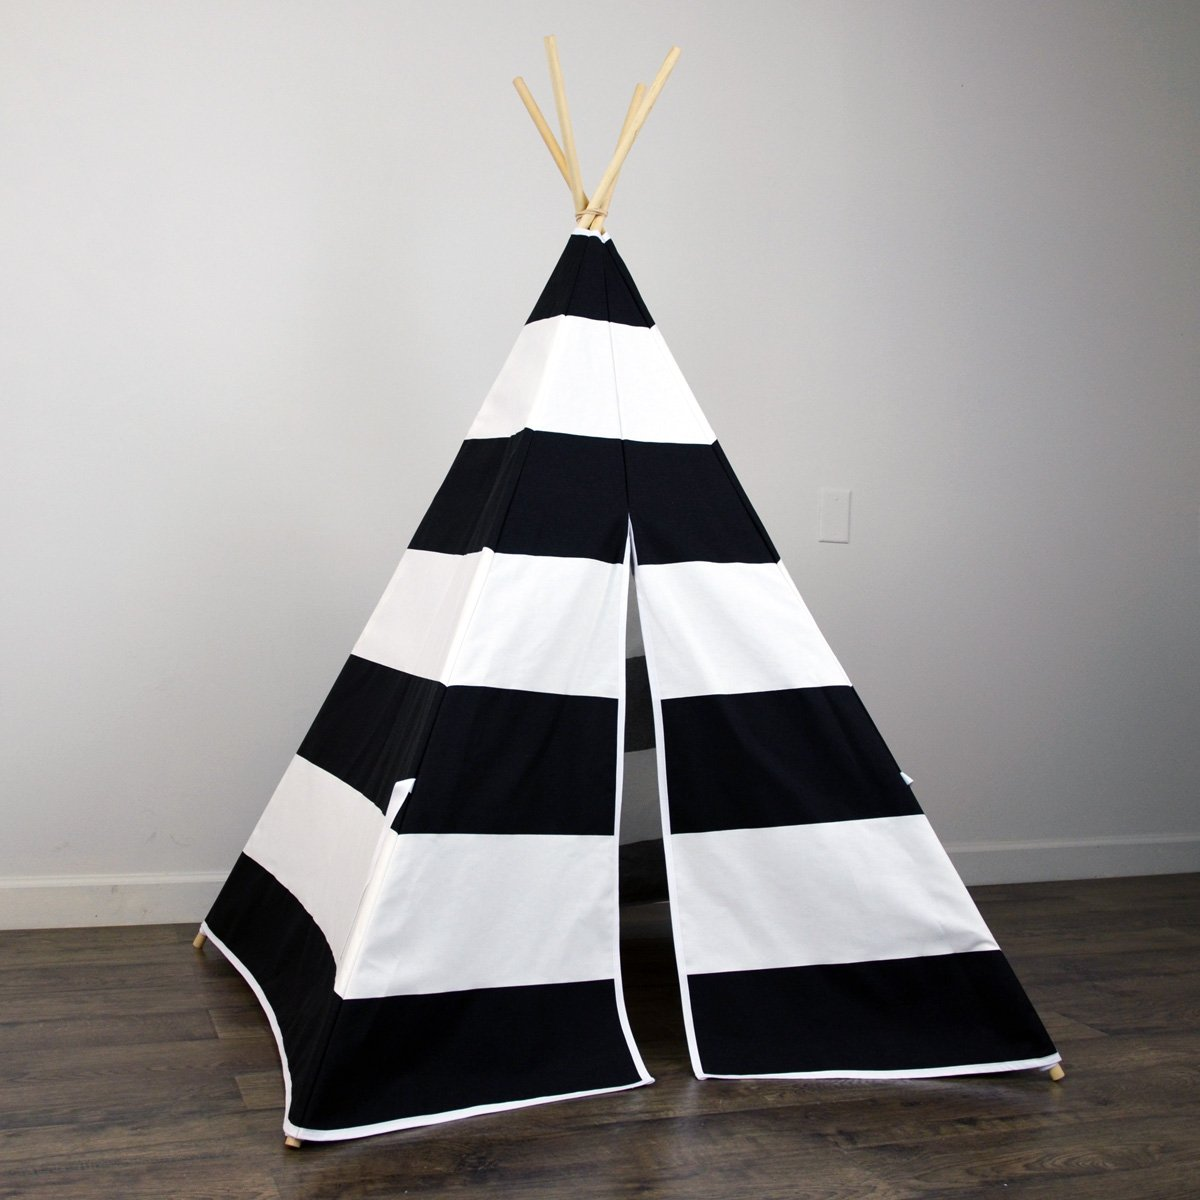 Design Teepee For Kids amazon com kids teepee tent in black white stripe includes large canvas and wooden poles great gift idea for bo